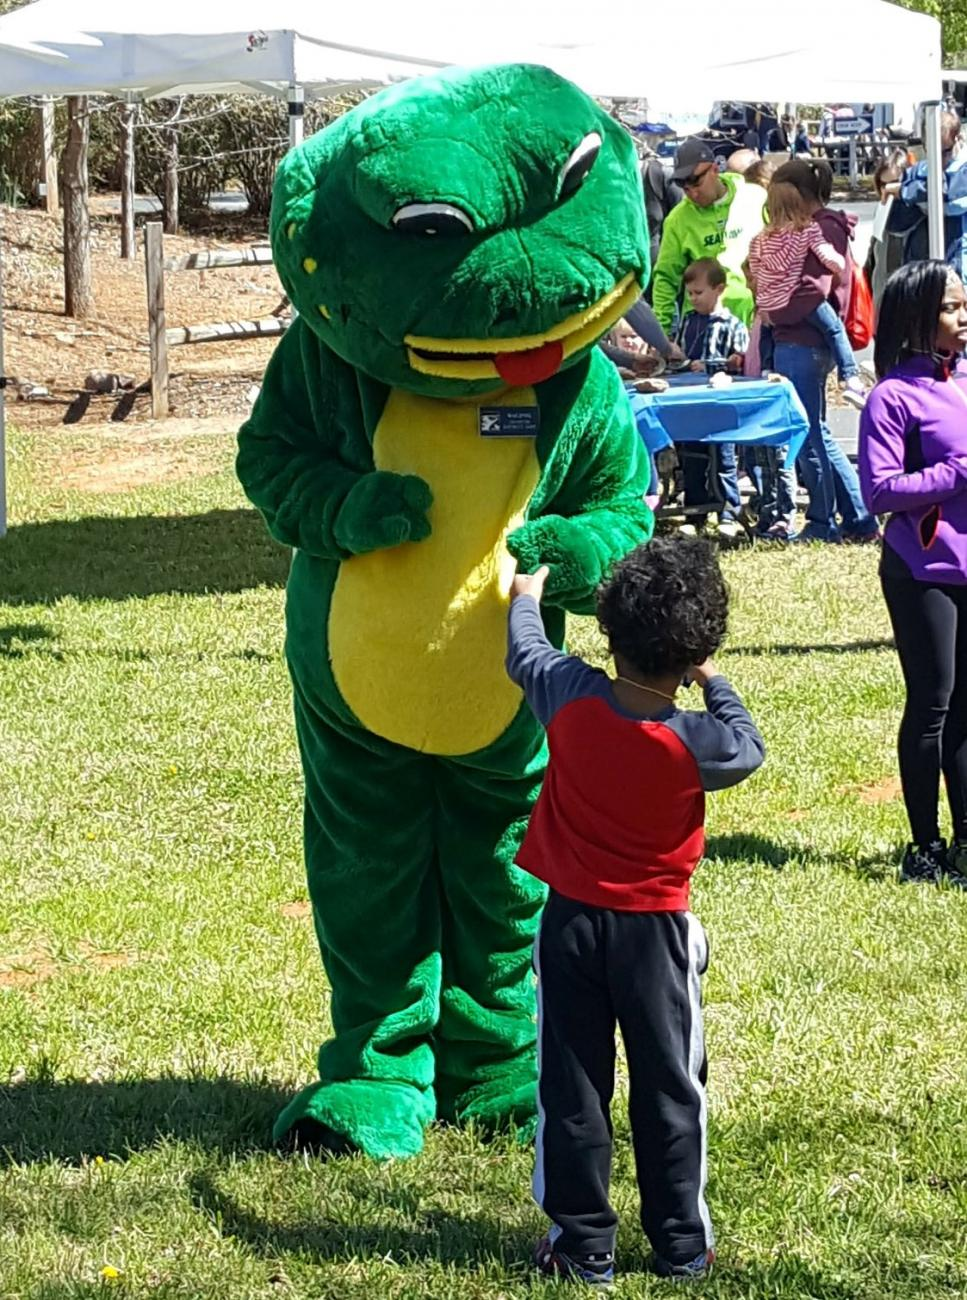 frog mascot stands with child on open play field with tents and trees in background